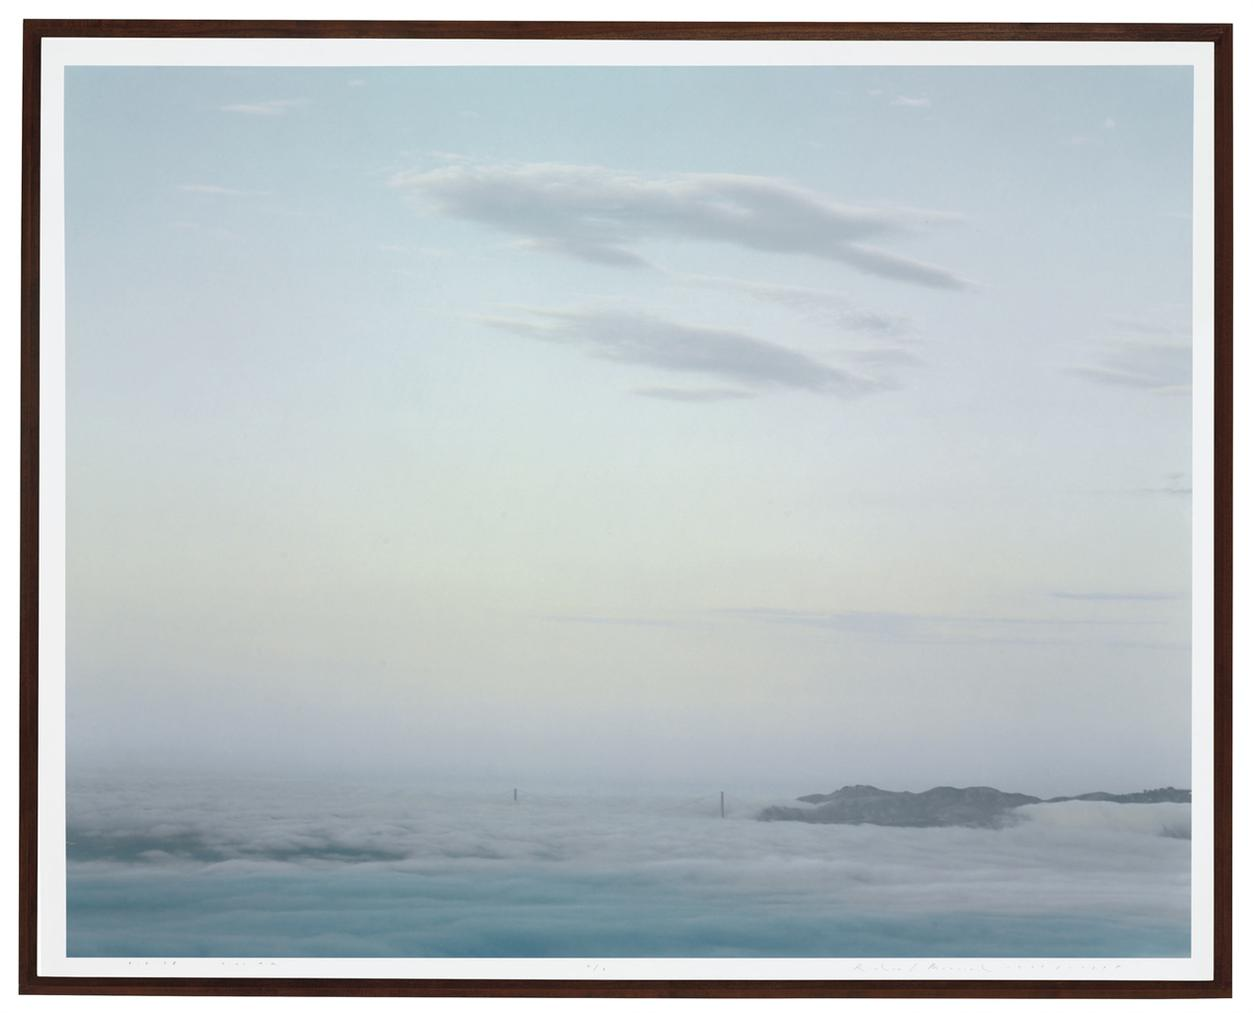 Richard Misrach-9.4.98, 7:01 A.M. (View From My Front Porch)-1998